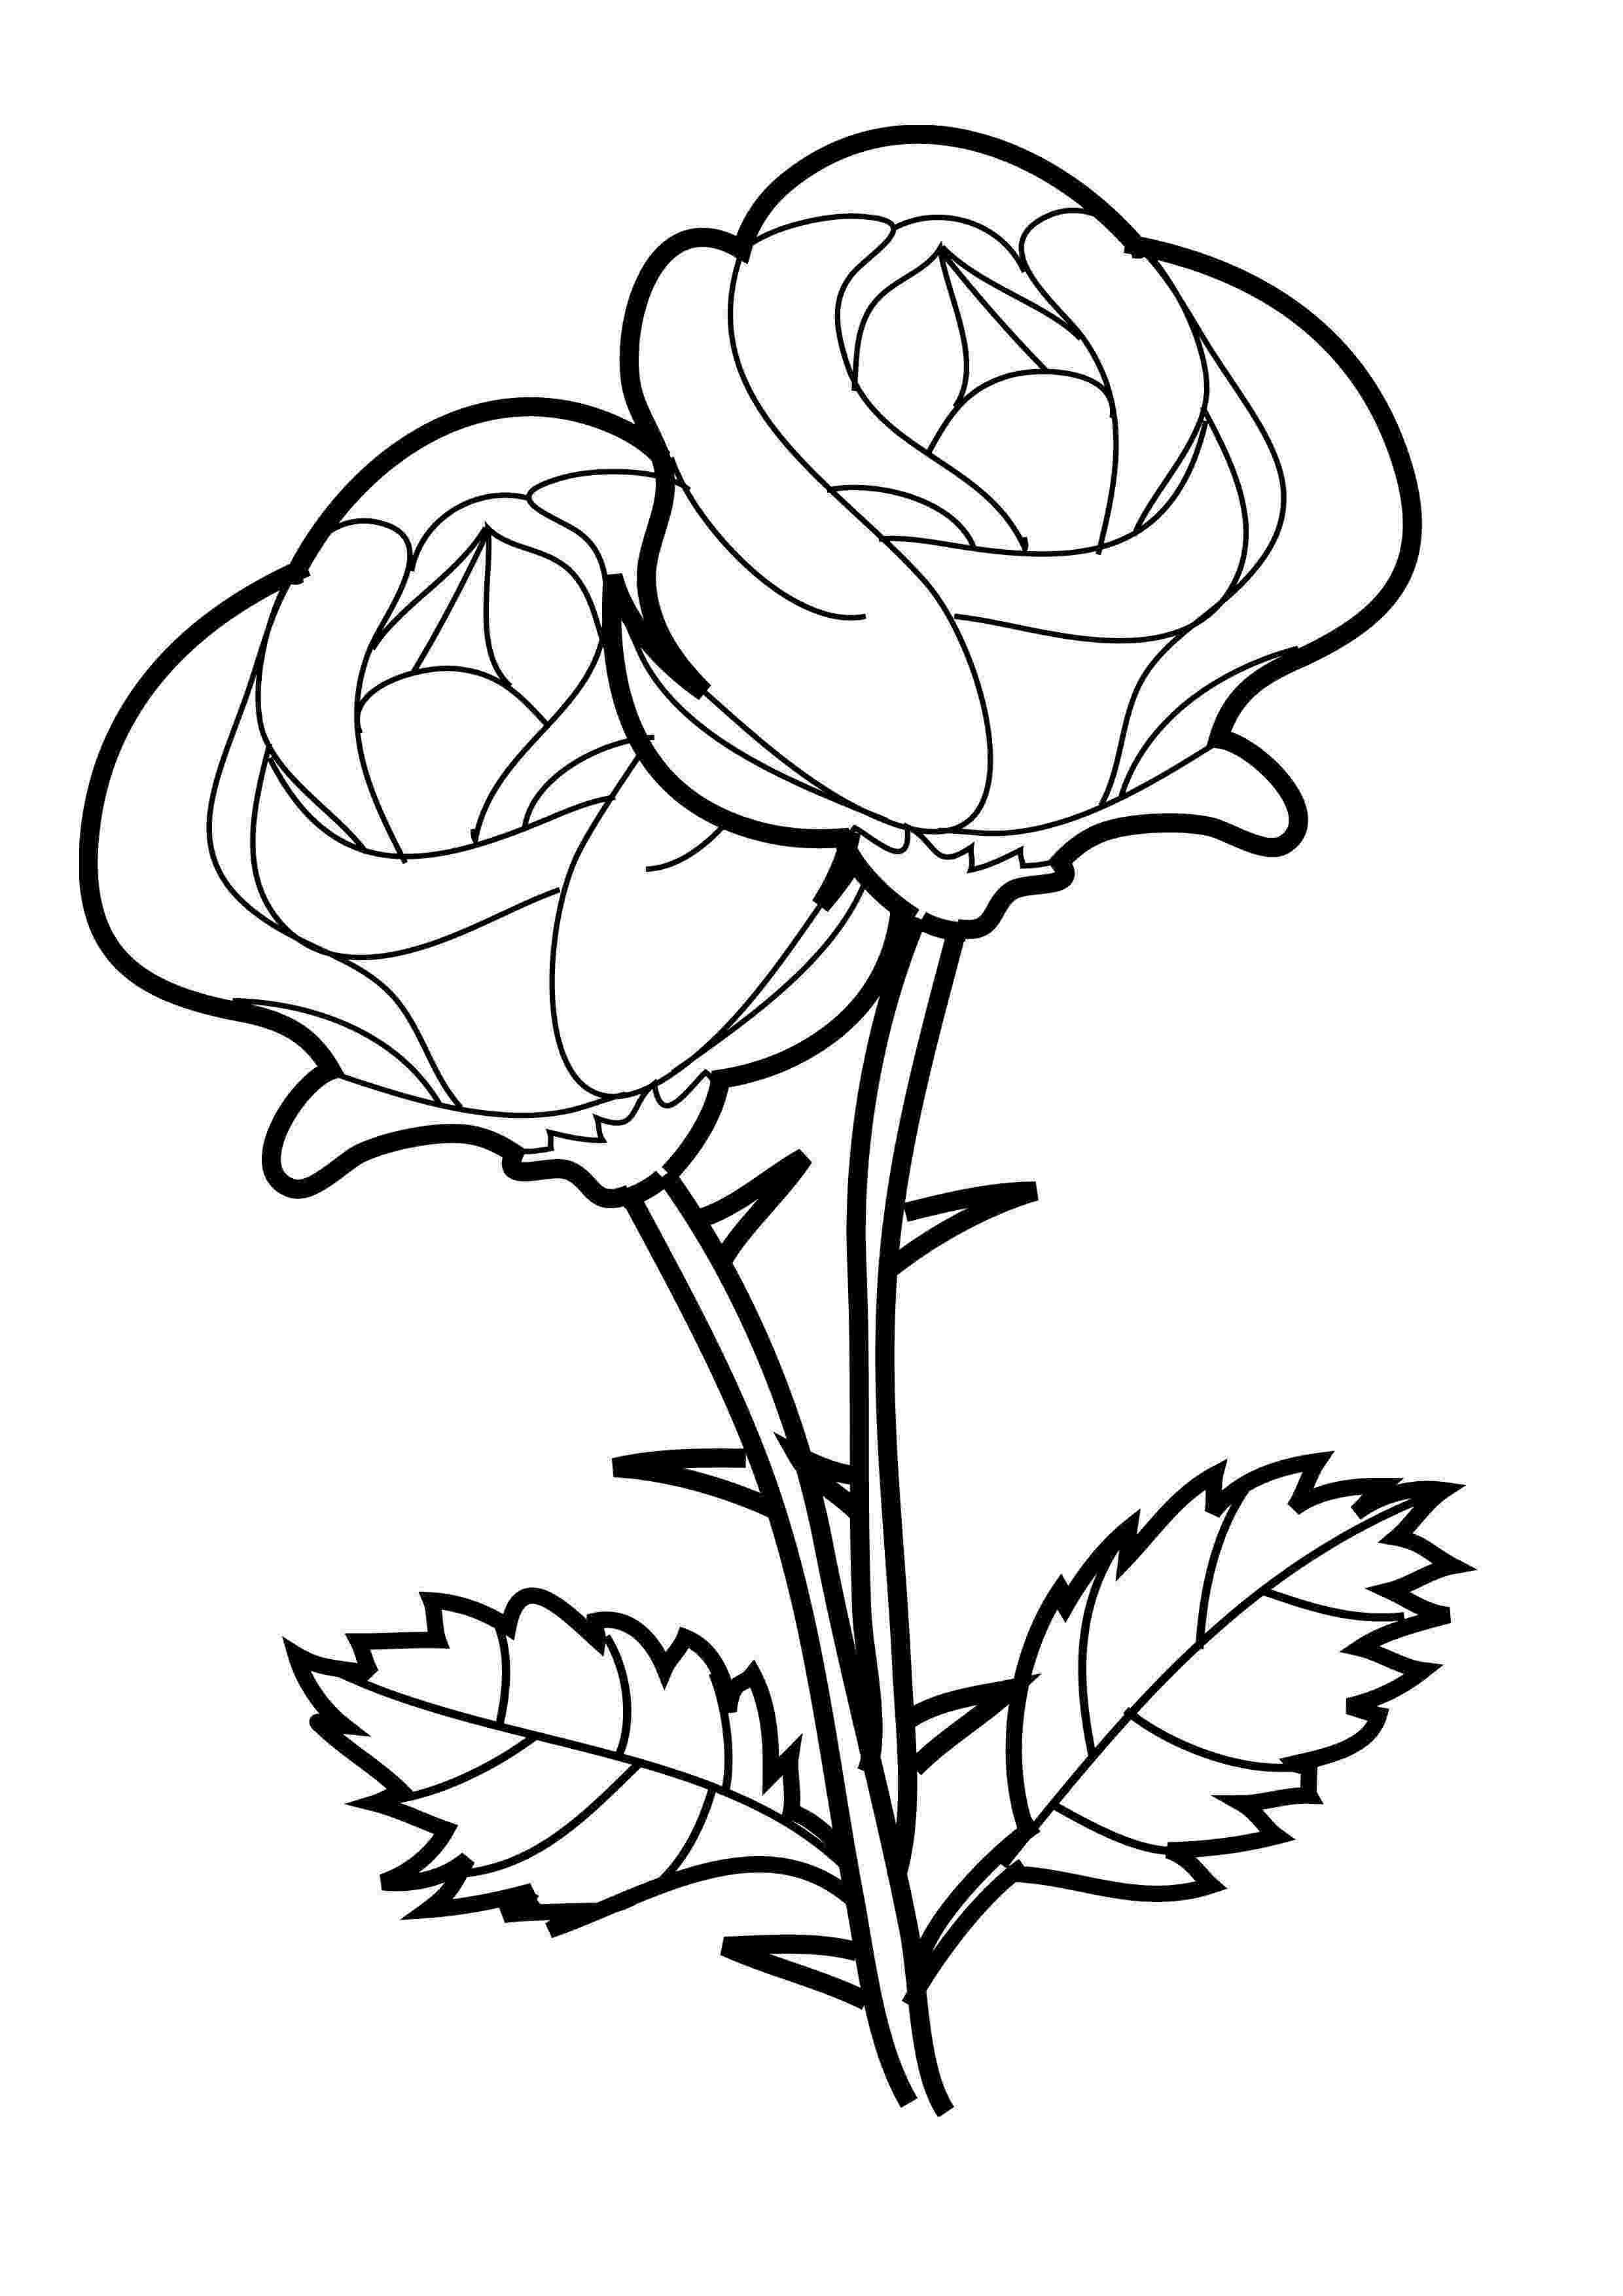 rose print out coloring lab print out rose